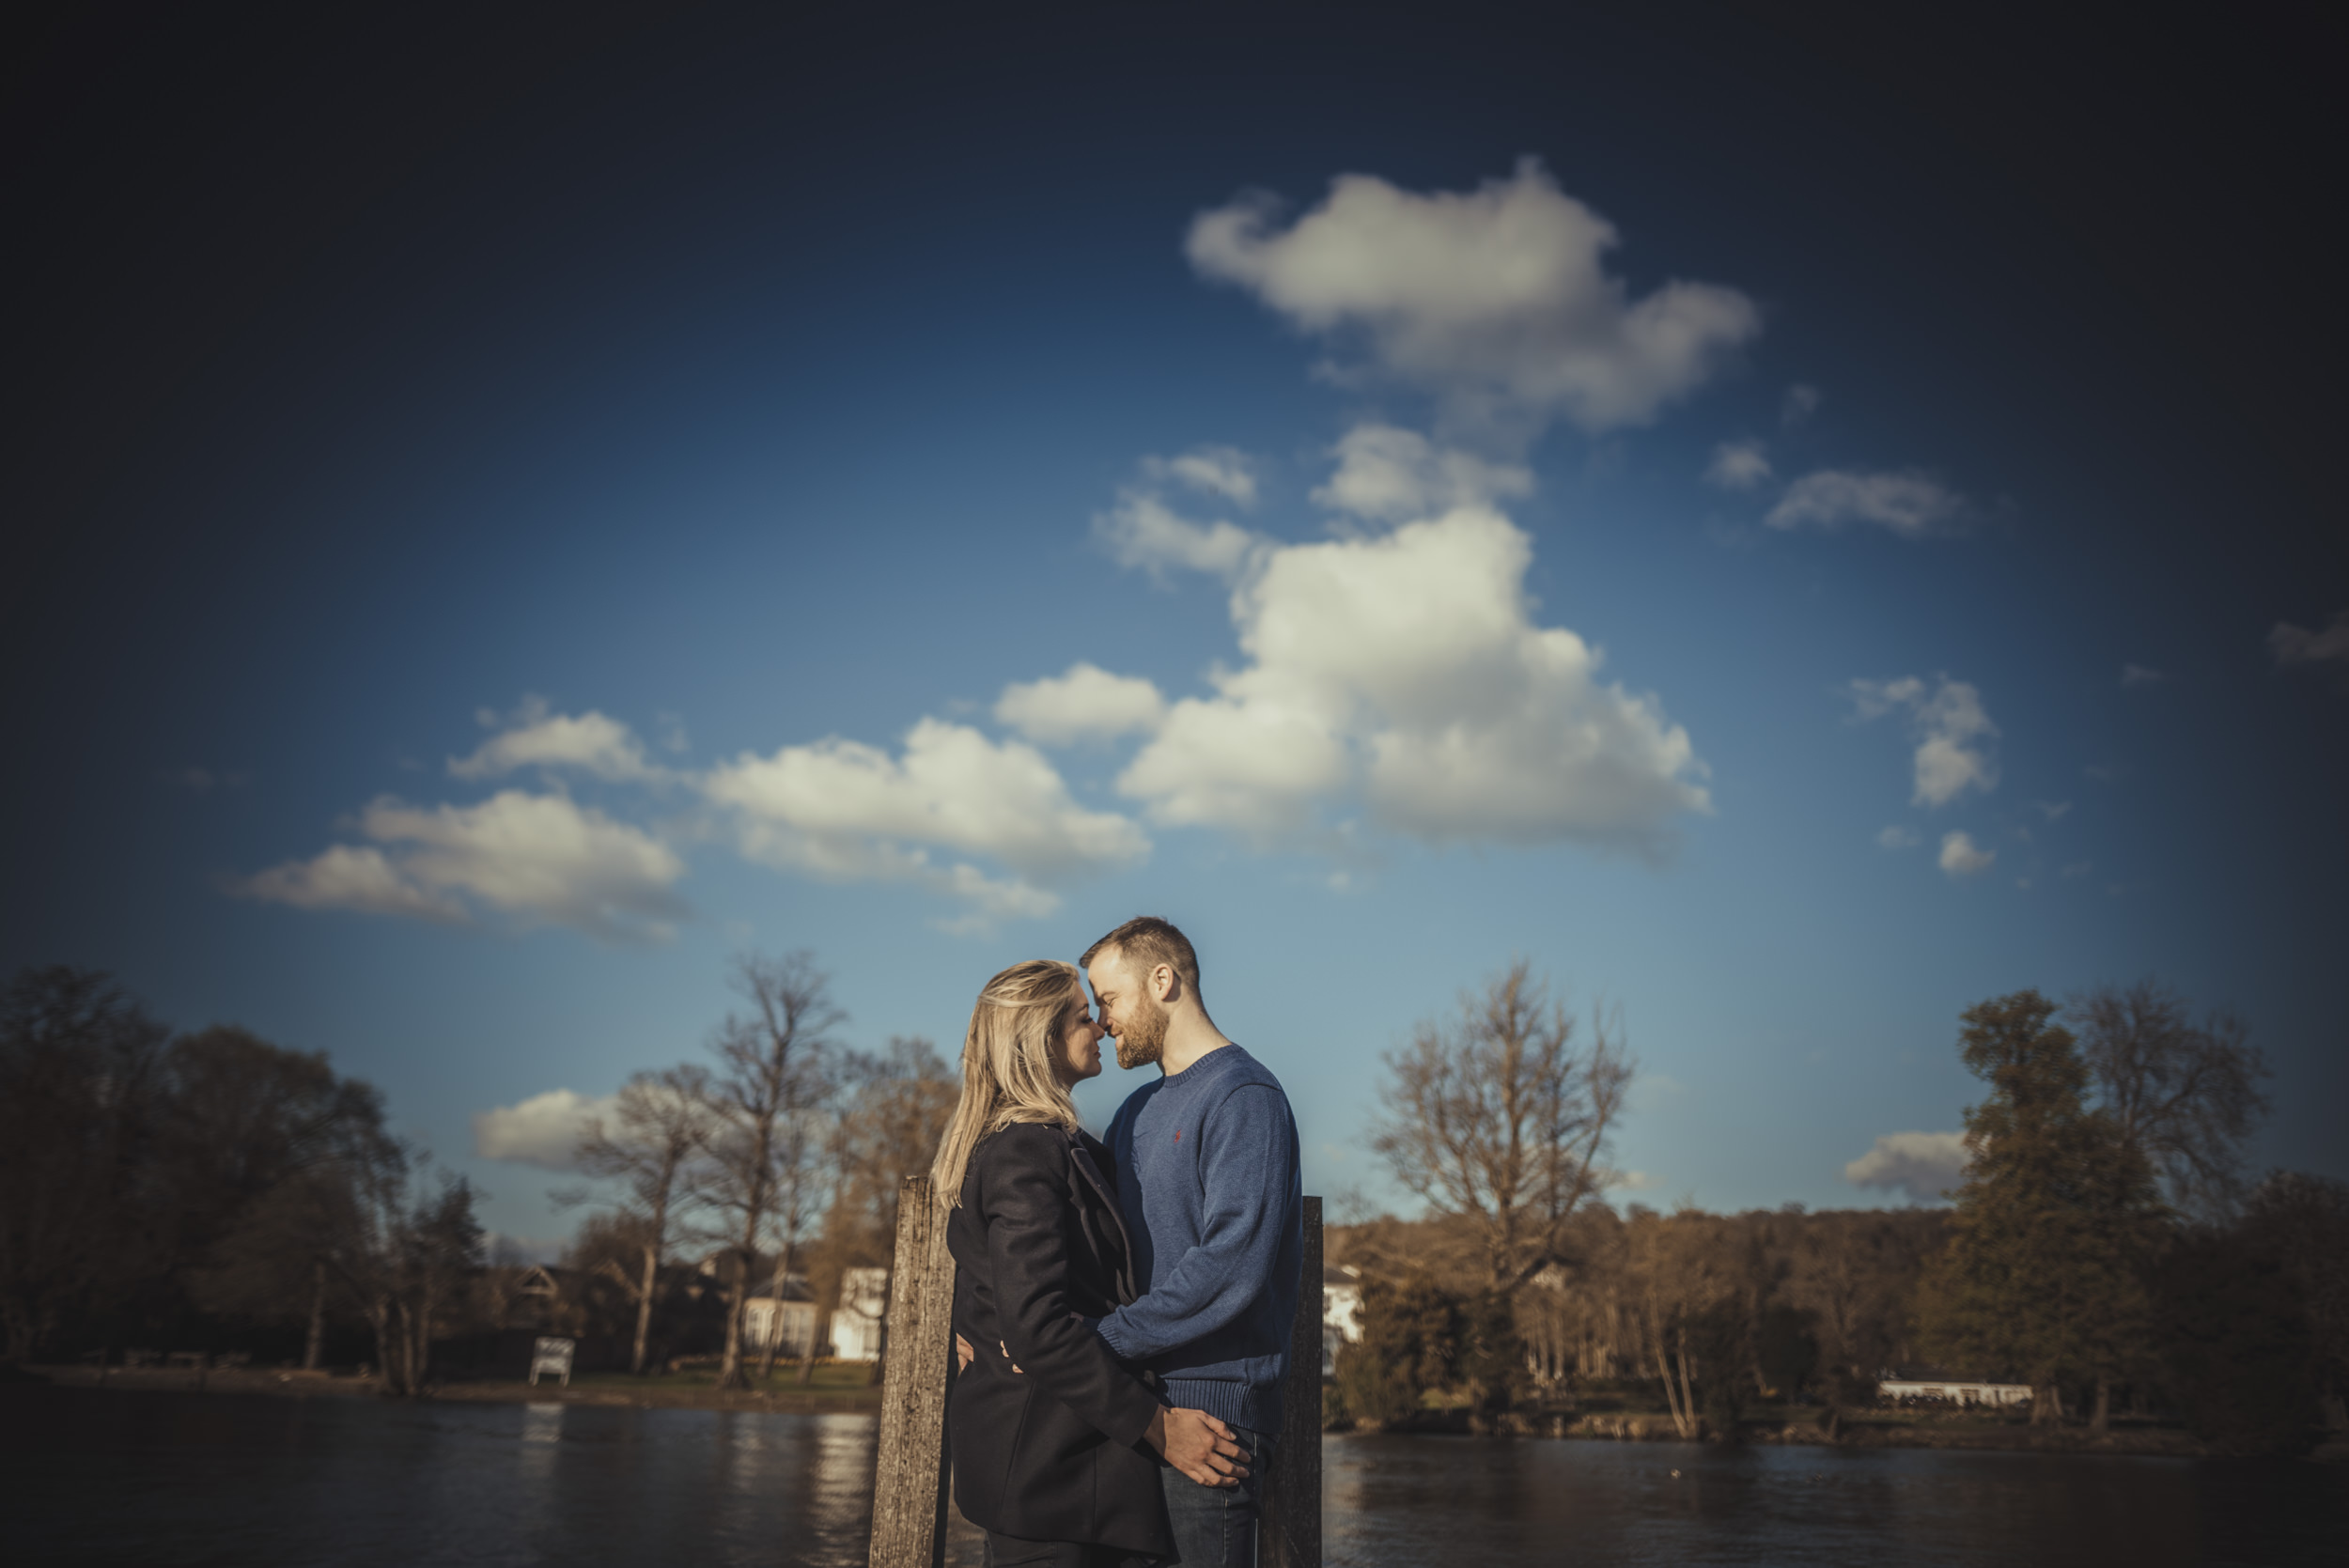 Hannah-and-James-Engagement-Session-Henley-on-Thames-Oxfordshire-Manu-Mendoza-Wedding-Photography-009.jpg